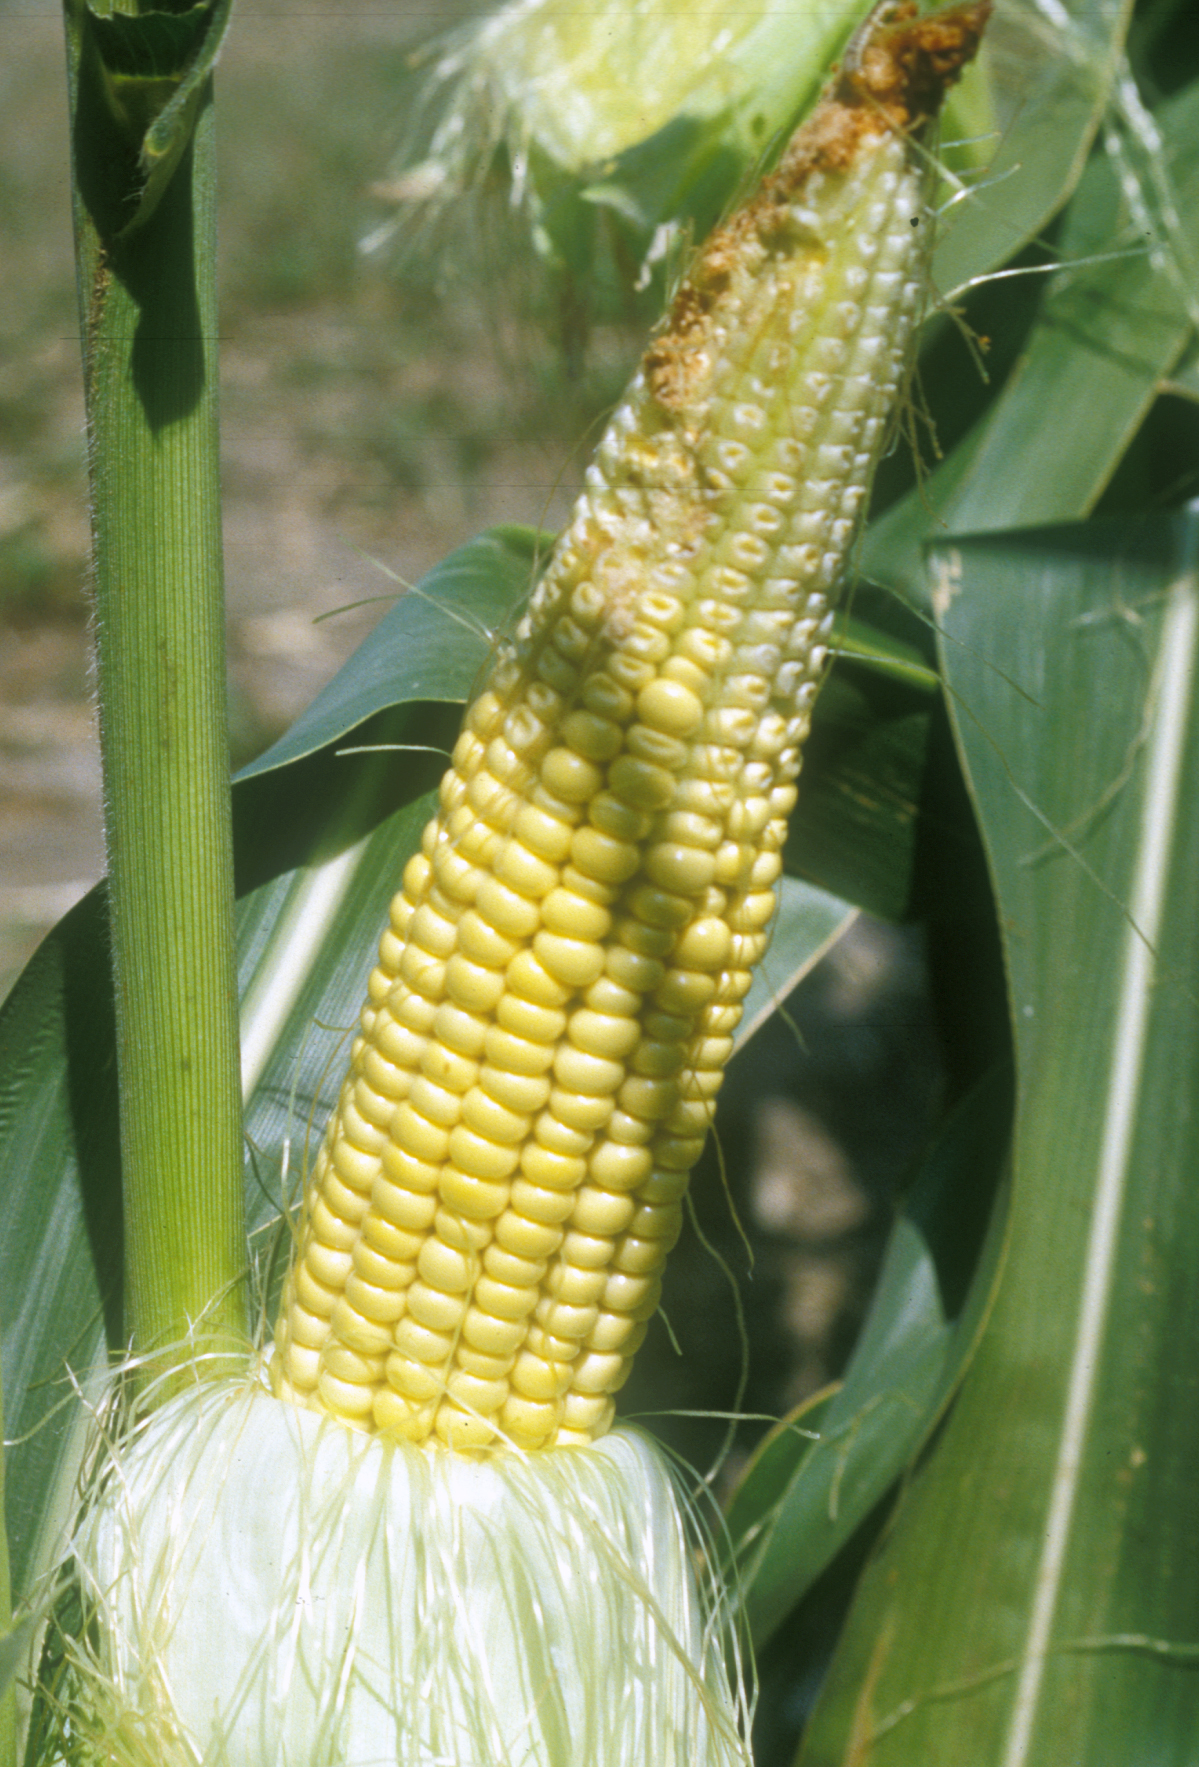 Figure 4: Aborted kernels. Some tip kernels never fertilized. Others in the top half of the ear stopped growing. Arrested kernels look different from unfertilized ovules in size and color.